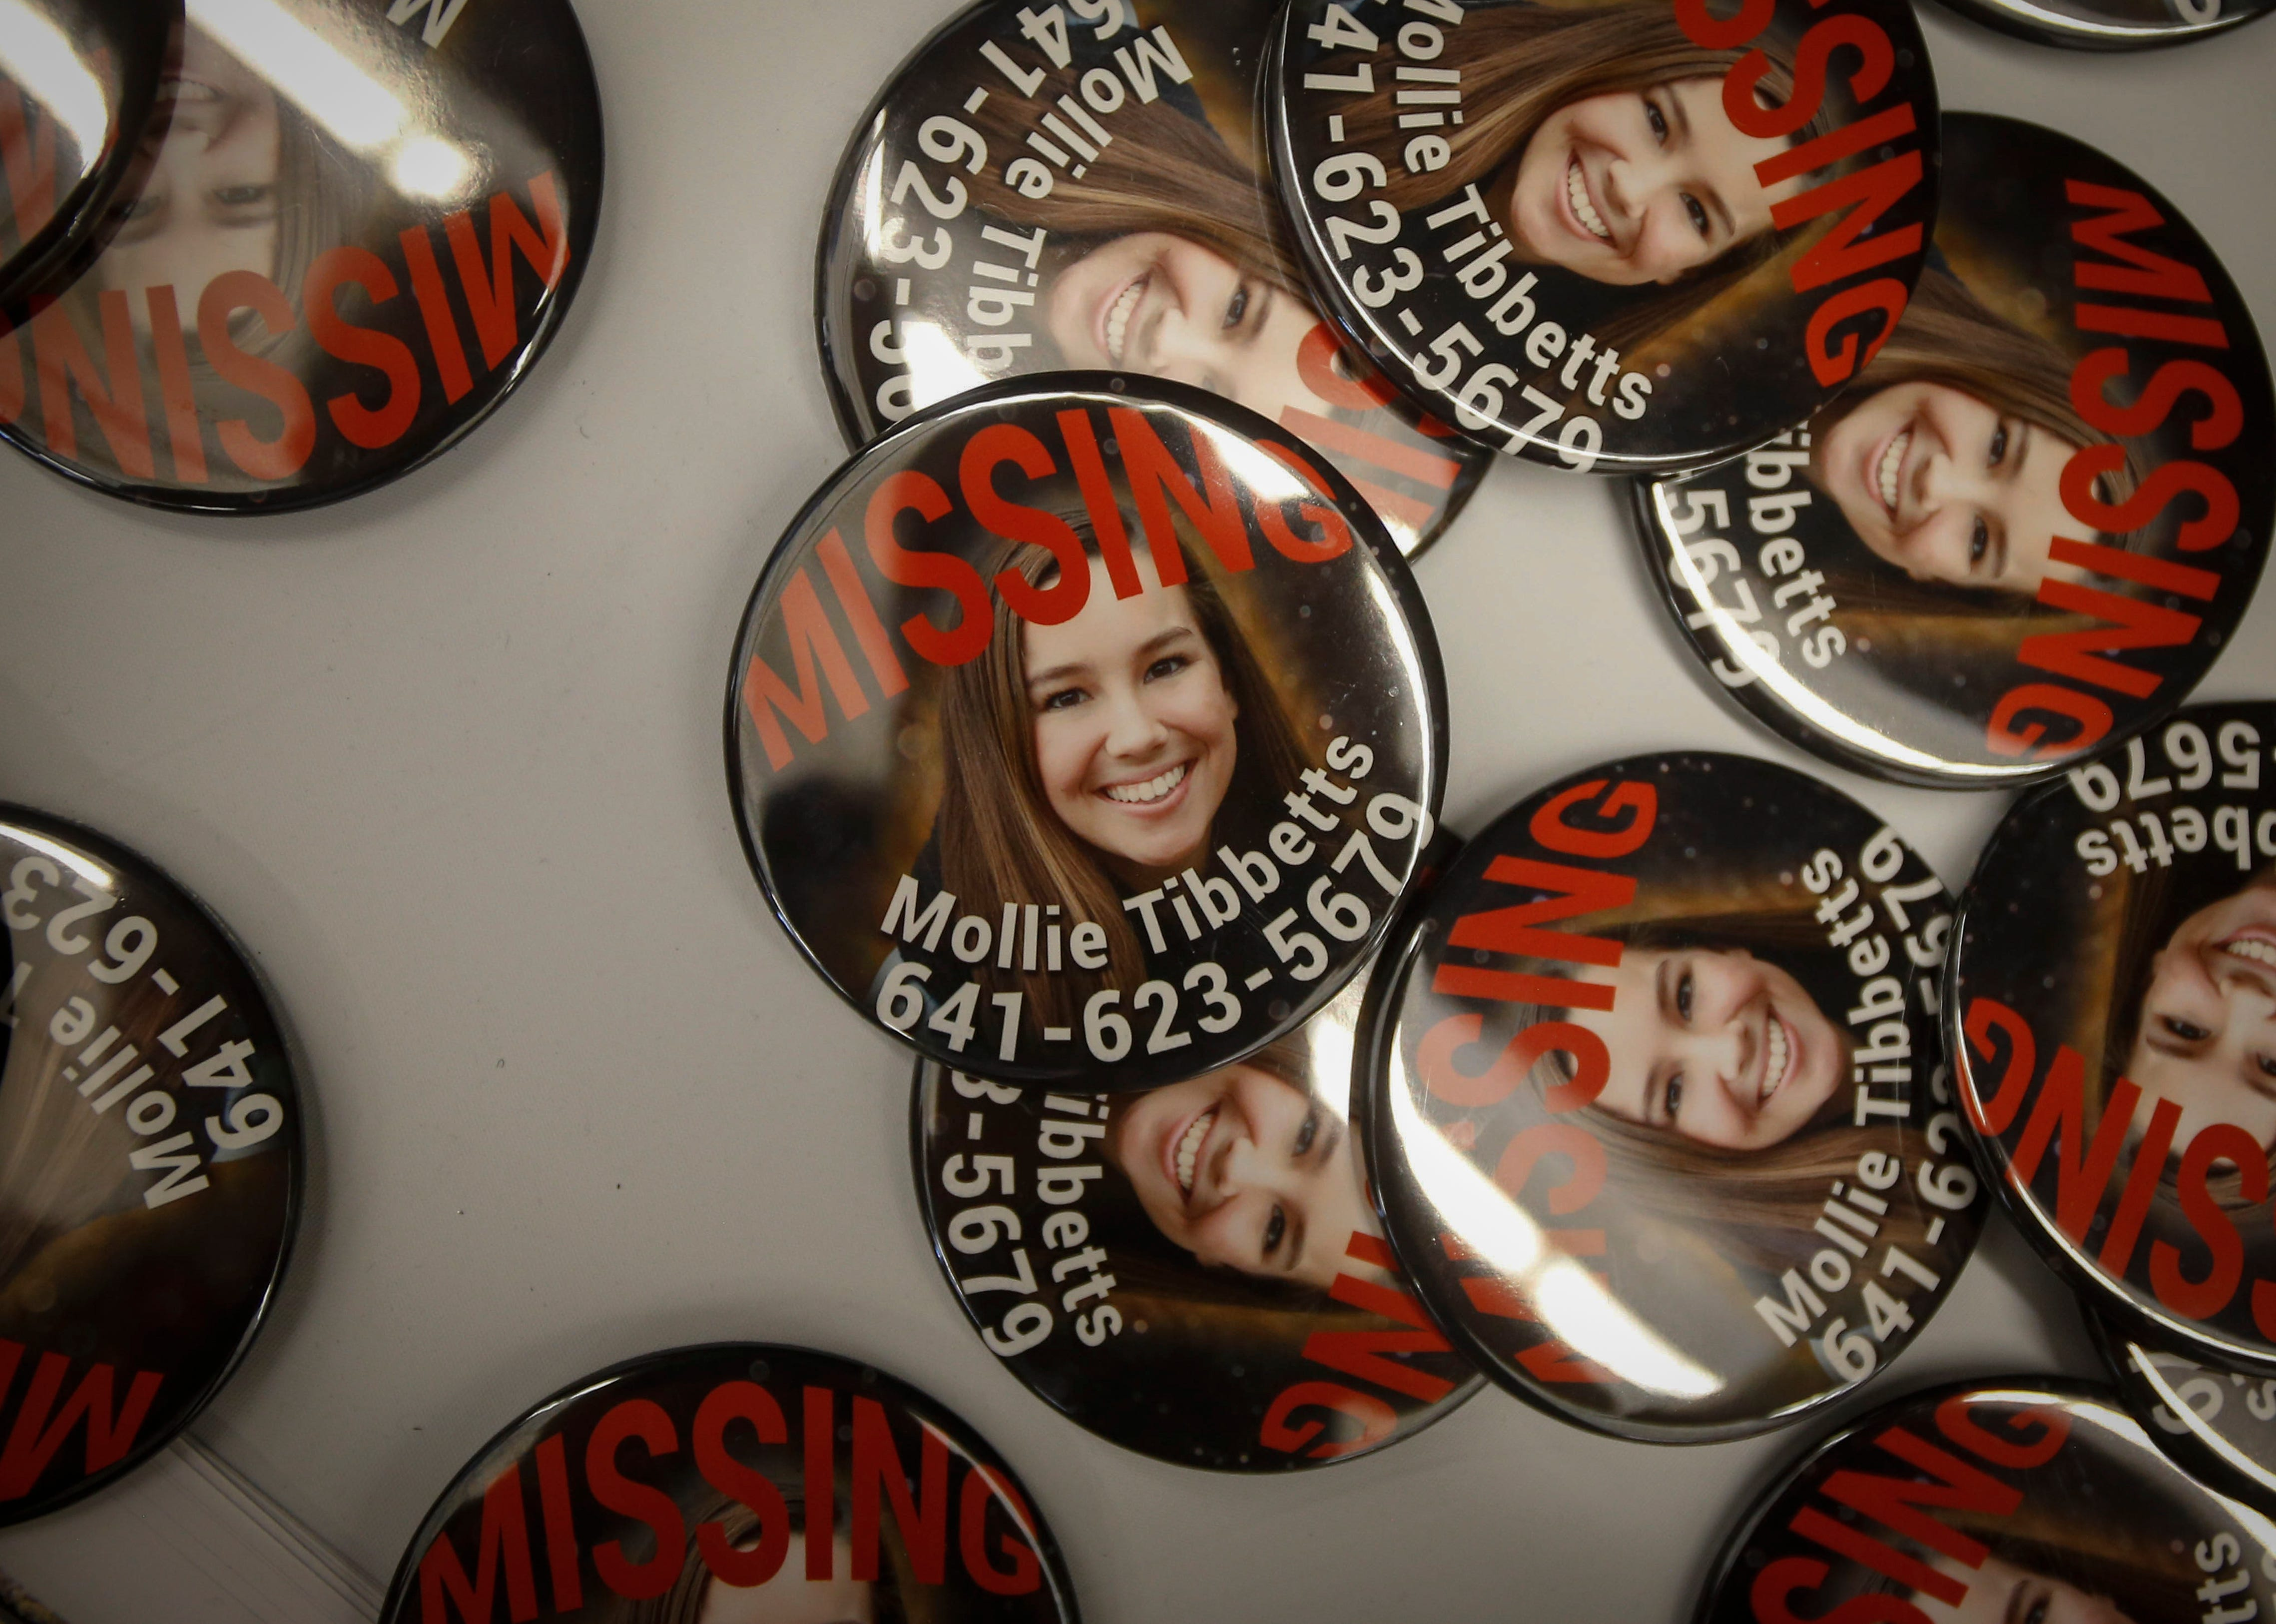 Buttons displaying Mollie's image were distributed in the summer of 2018.